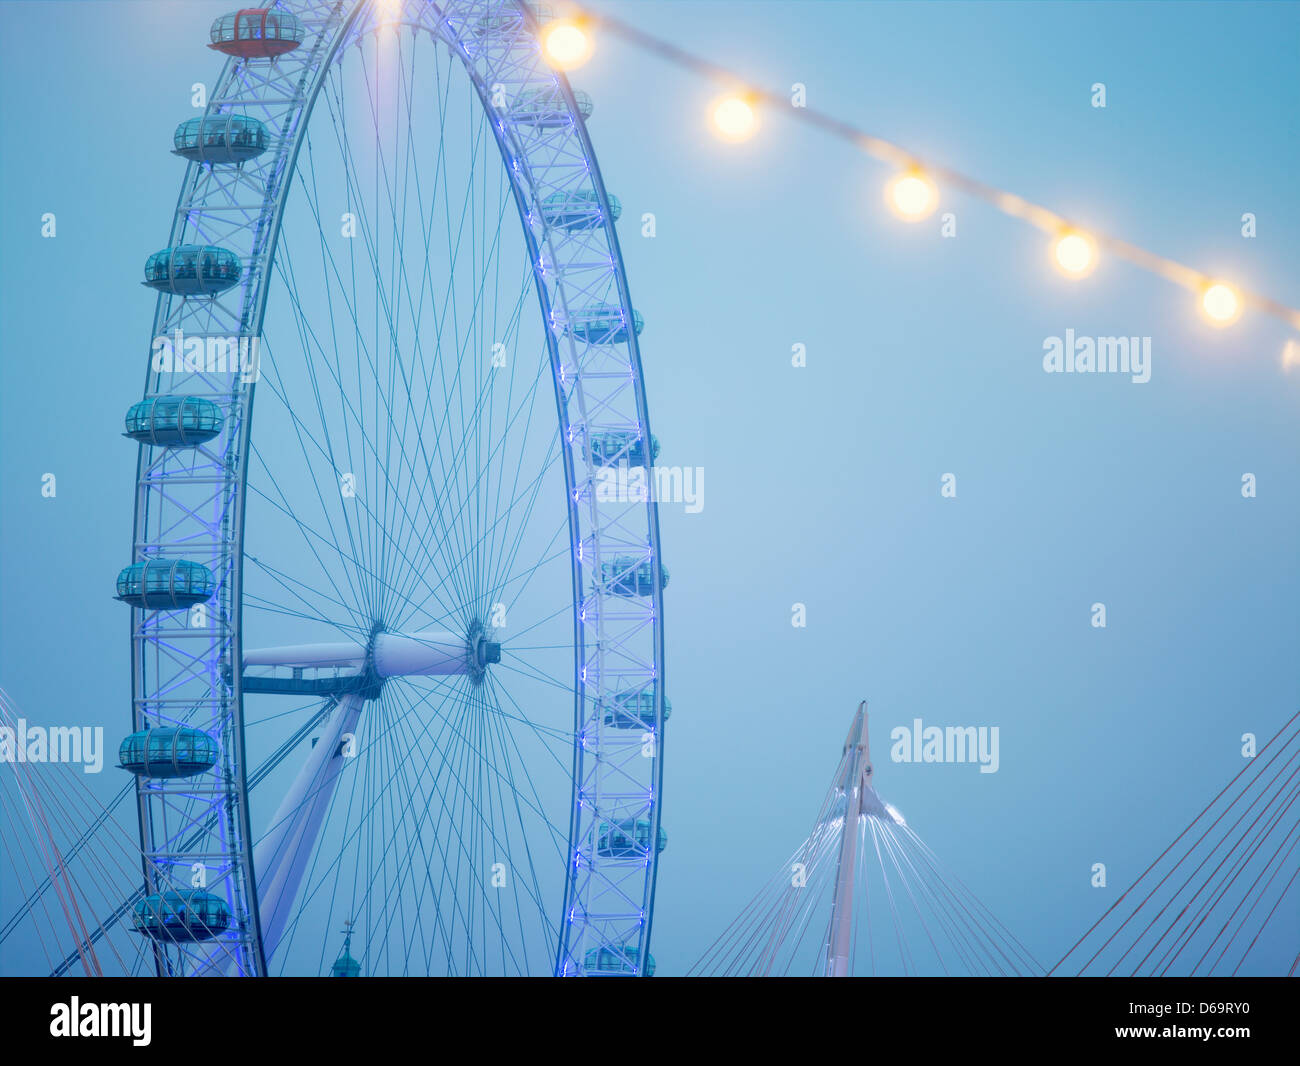 London Eye ferris wheel in blue sky - Stock Image